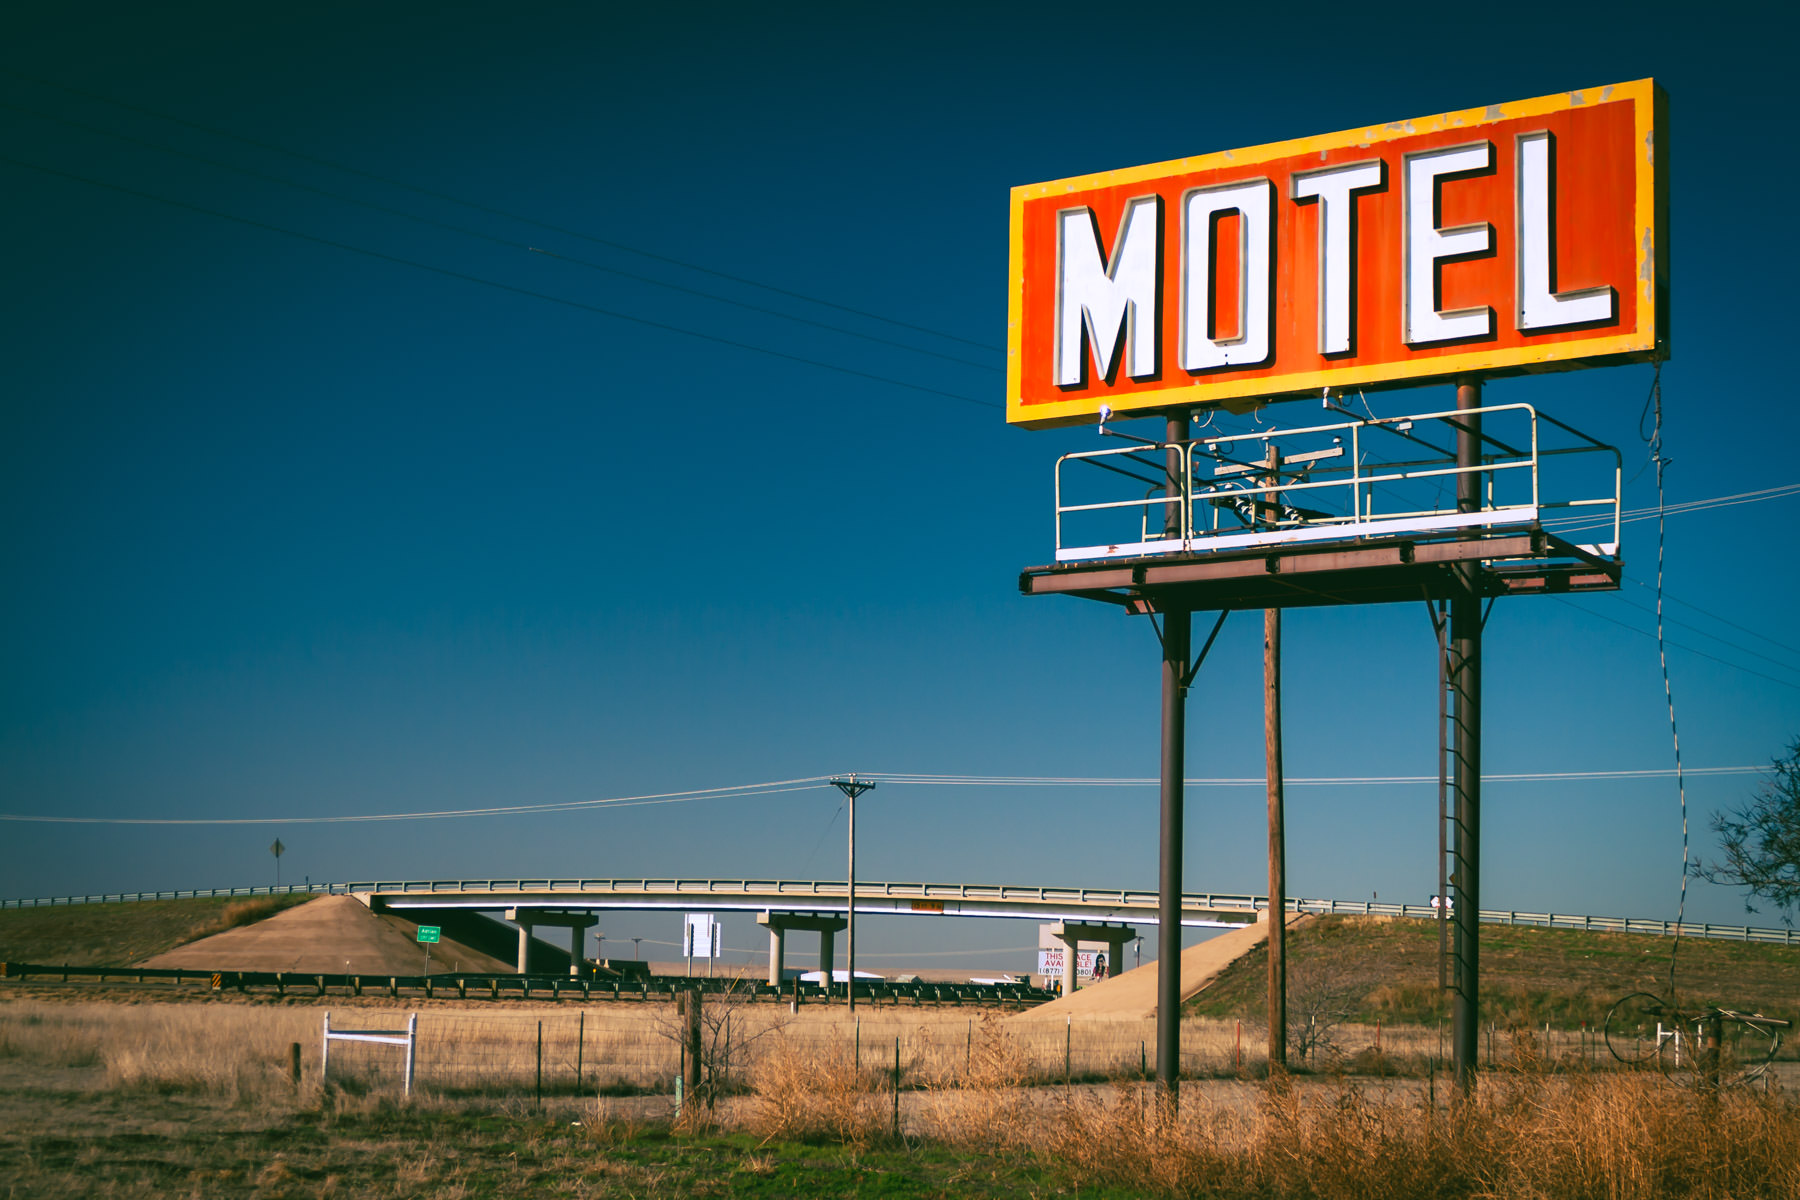 A billboard advertising at hotel in Adrian, Texas, stands watch over nearby Interstate 40.